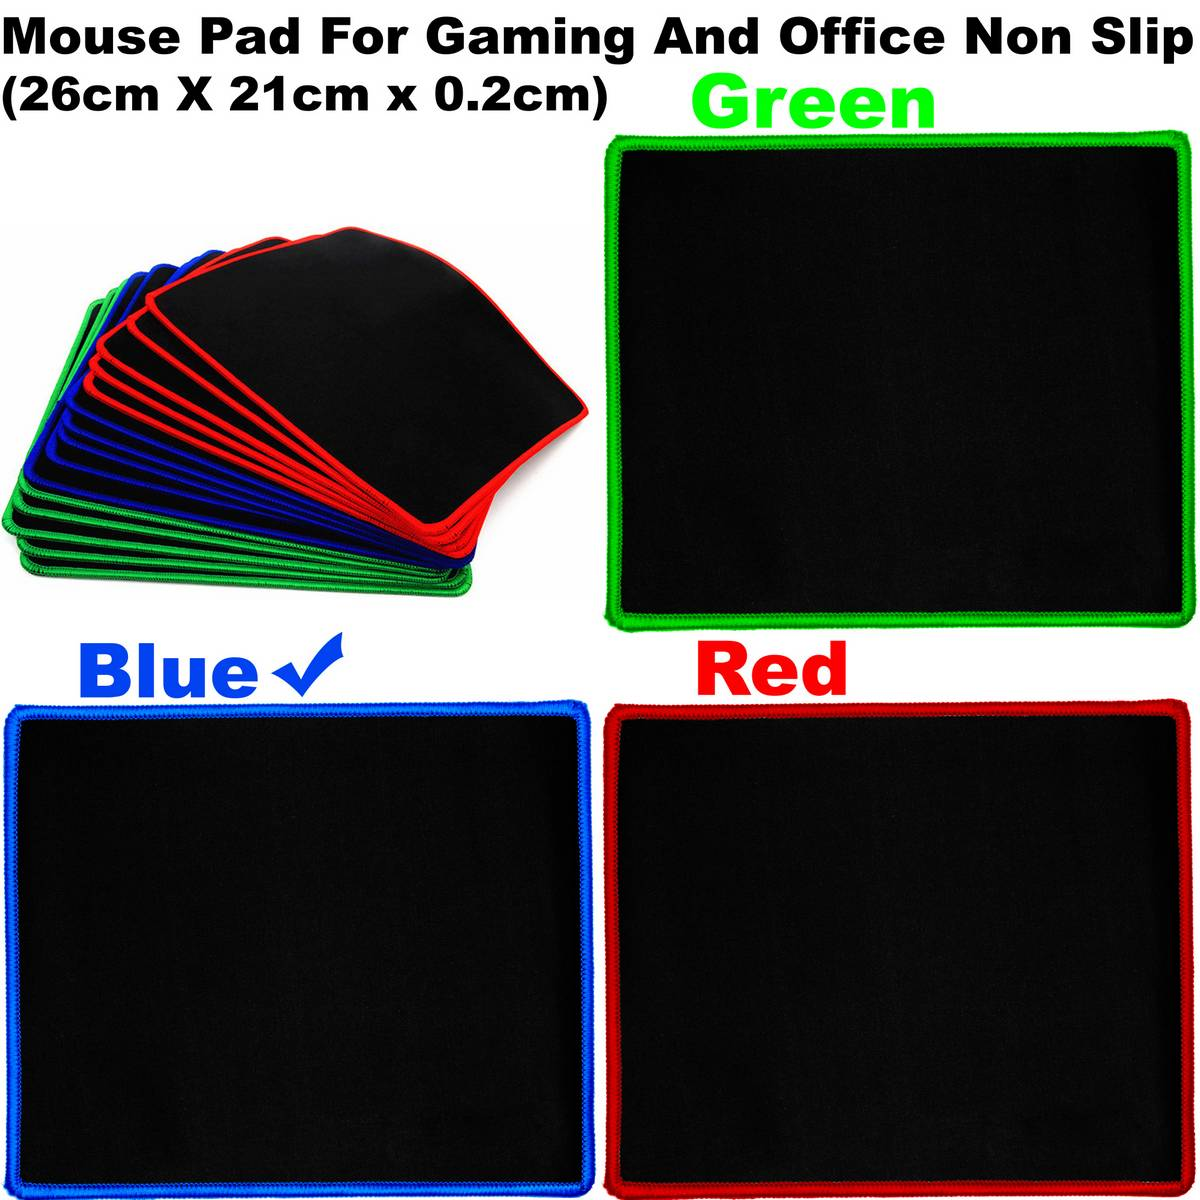 Mouse Pad For Gaming And Office Non Slip Rubber With Locking Edge Large (26cm X 21cm x 0.2cm)